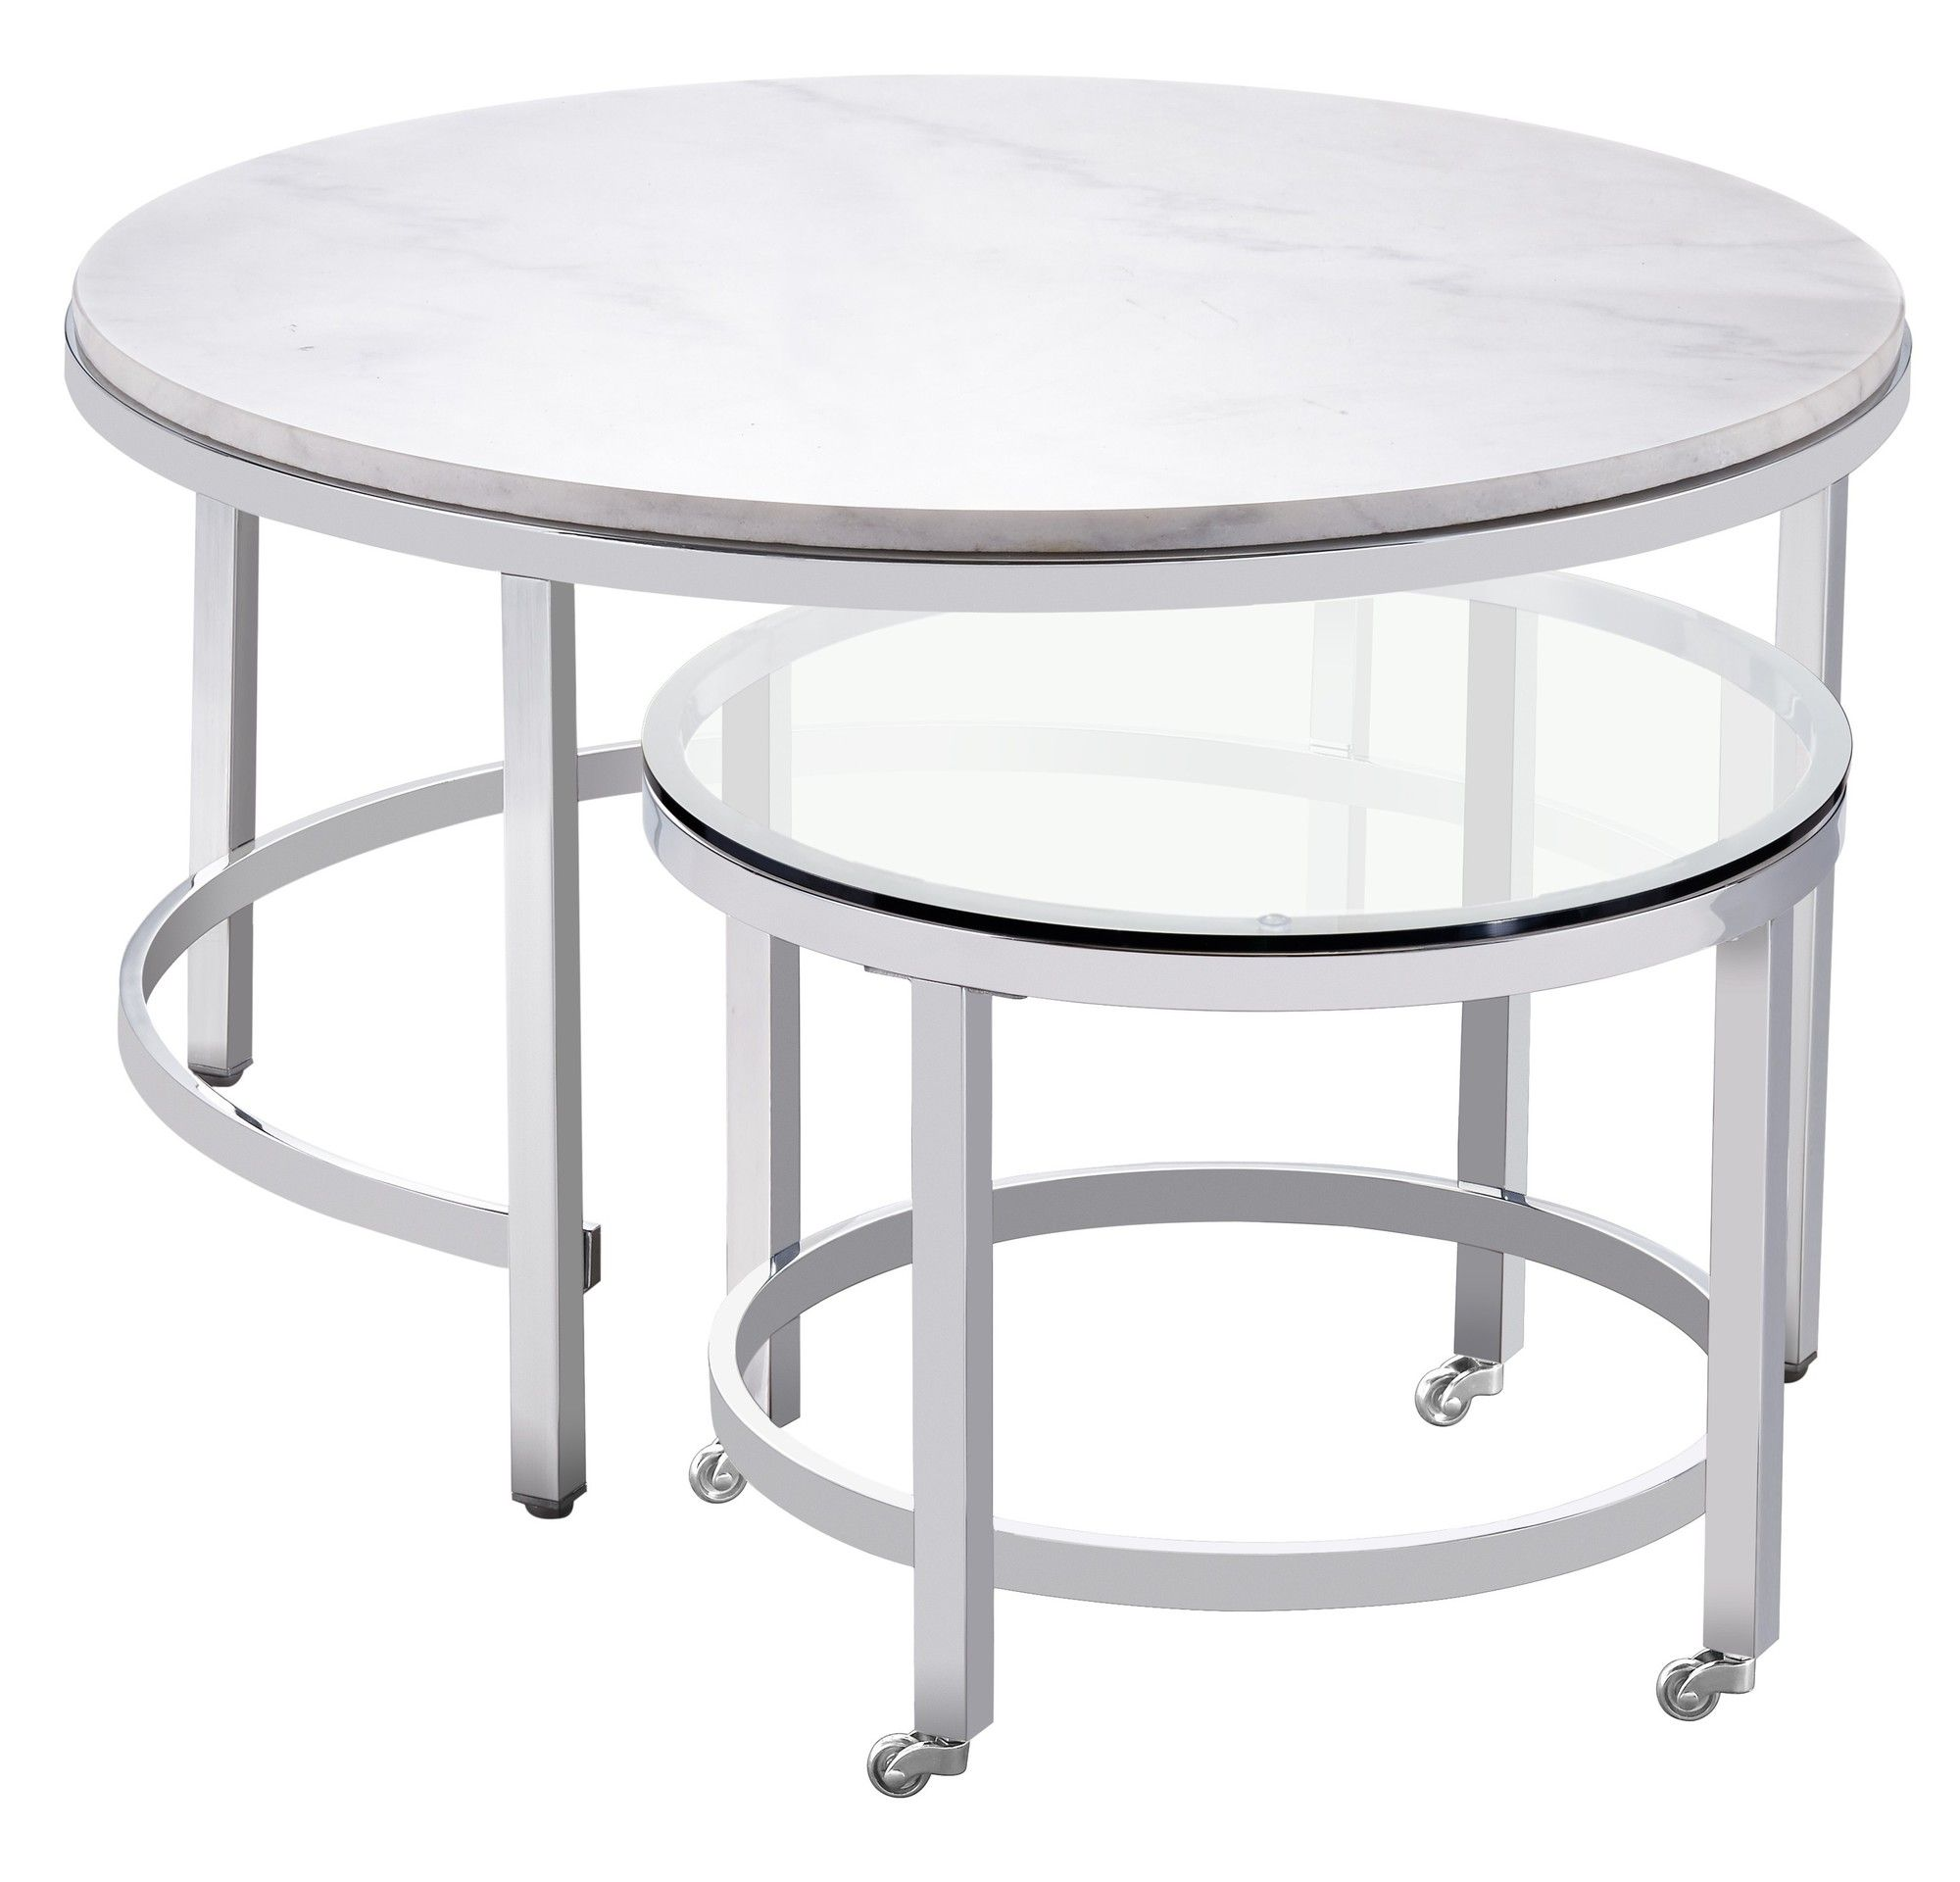 Blanco 2 piece coffee table set products pinterest products blanco 2 piece coffee table set geotapseo Choice Image